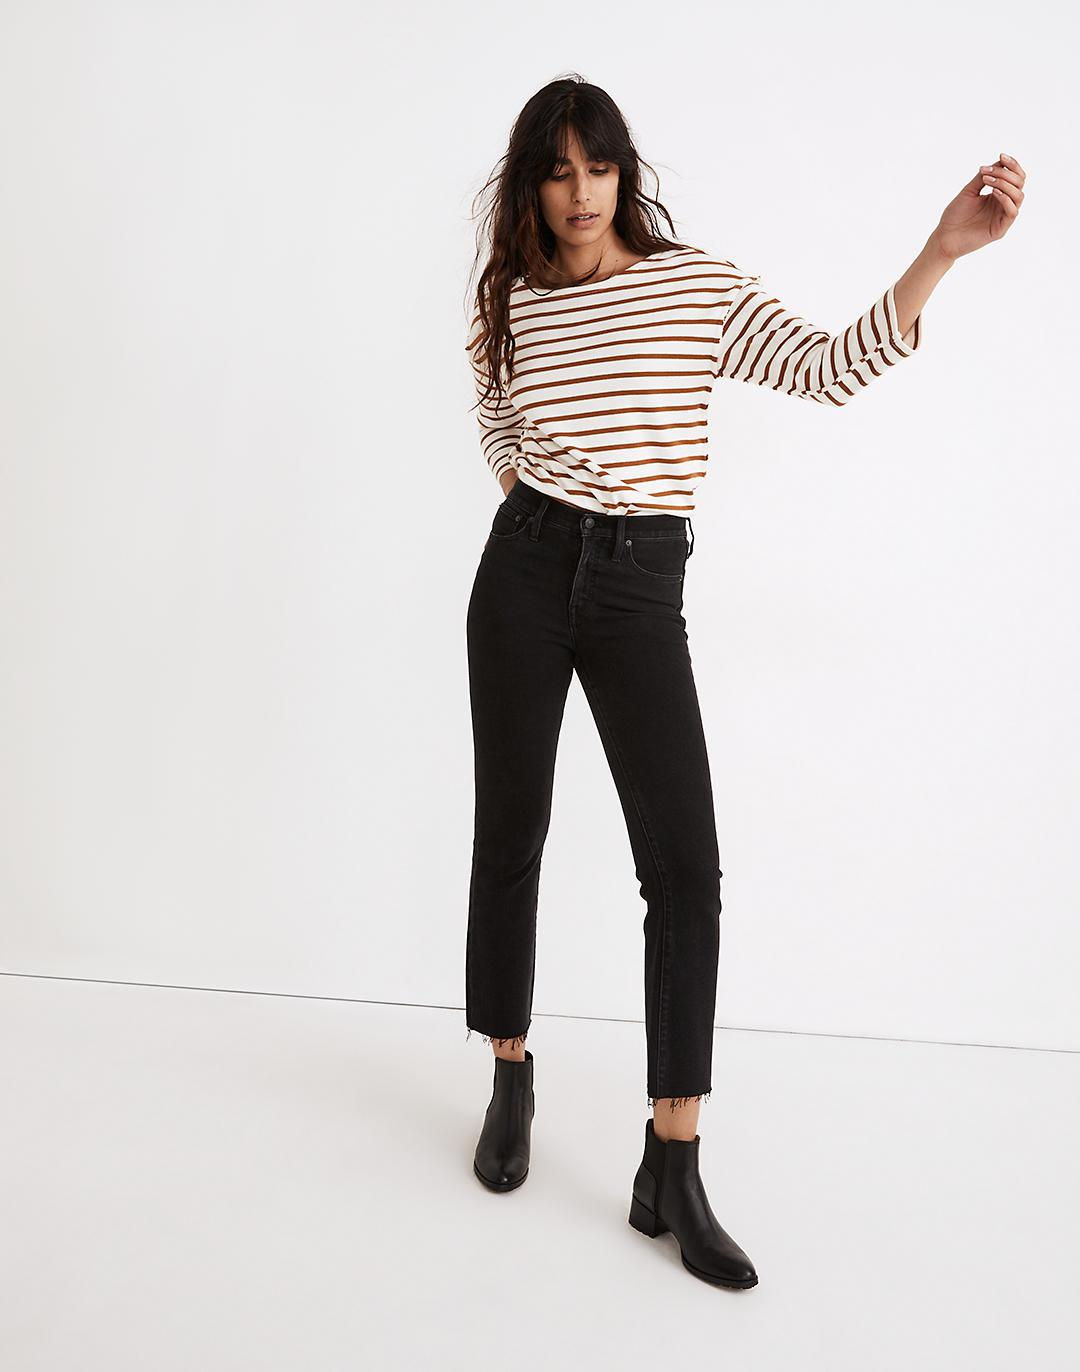 Cali Demi-Boot Jeans in Edmunds Wash: Raw-Hem Edition